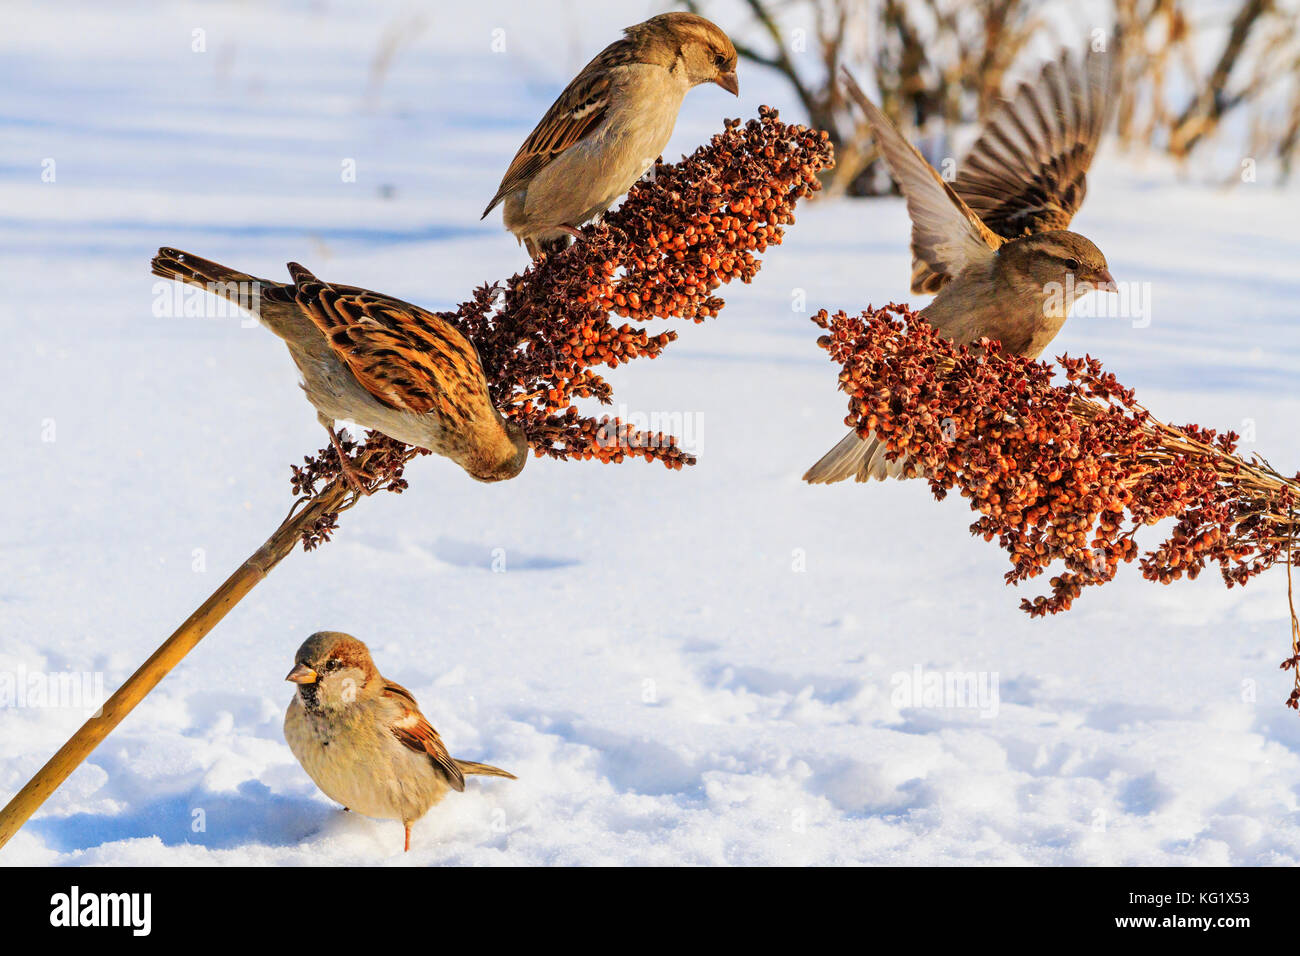 sparrows on a snowy sunny day eat the seeds , wildlife, winter survival, cold and frost - Stock Image